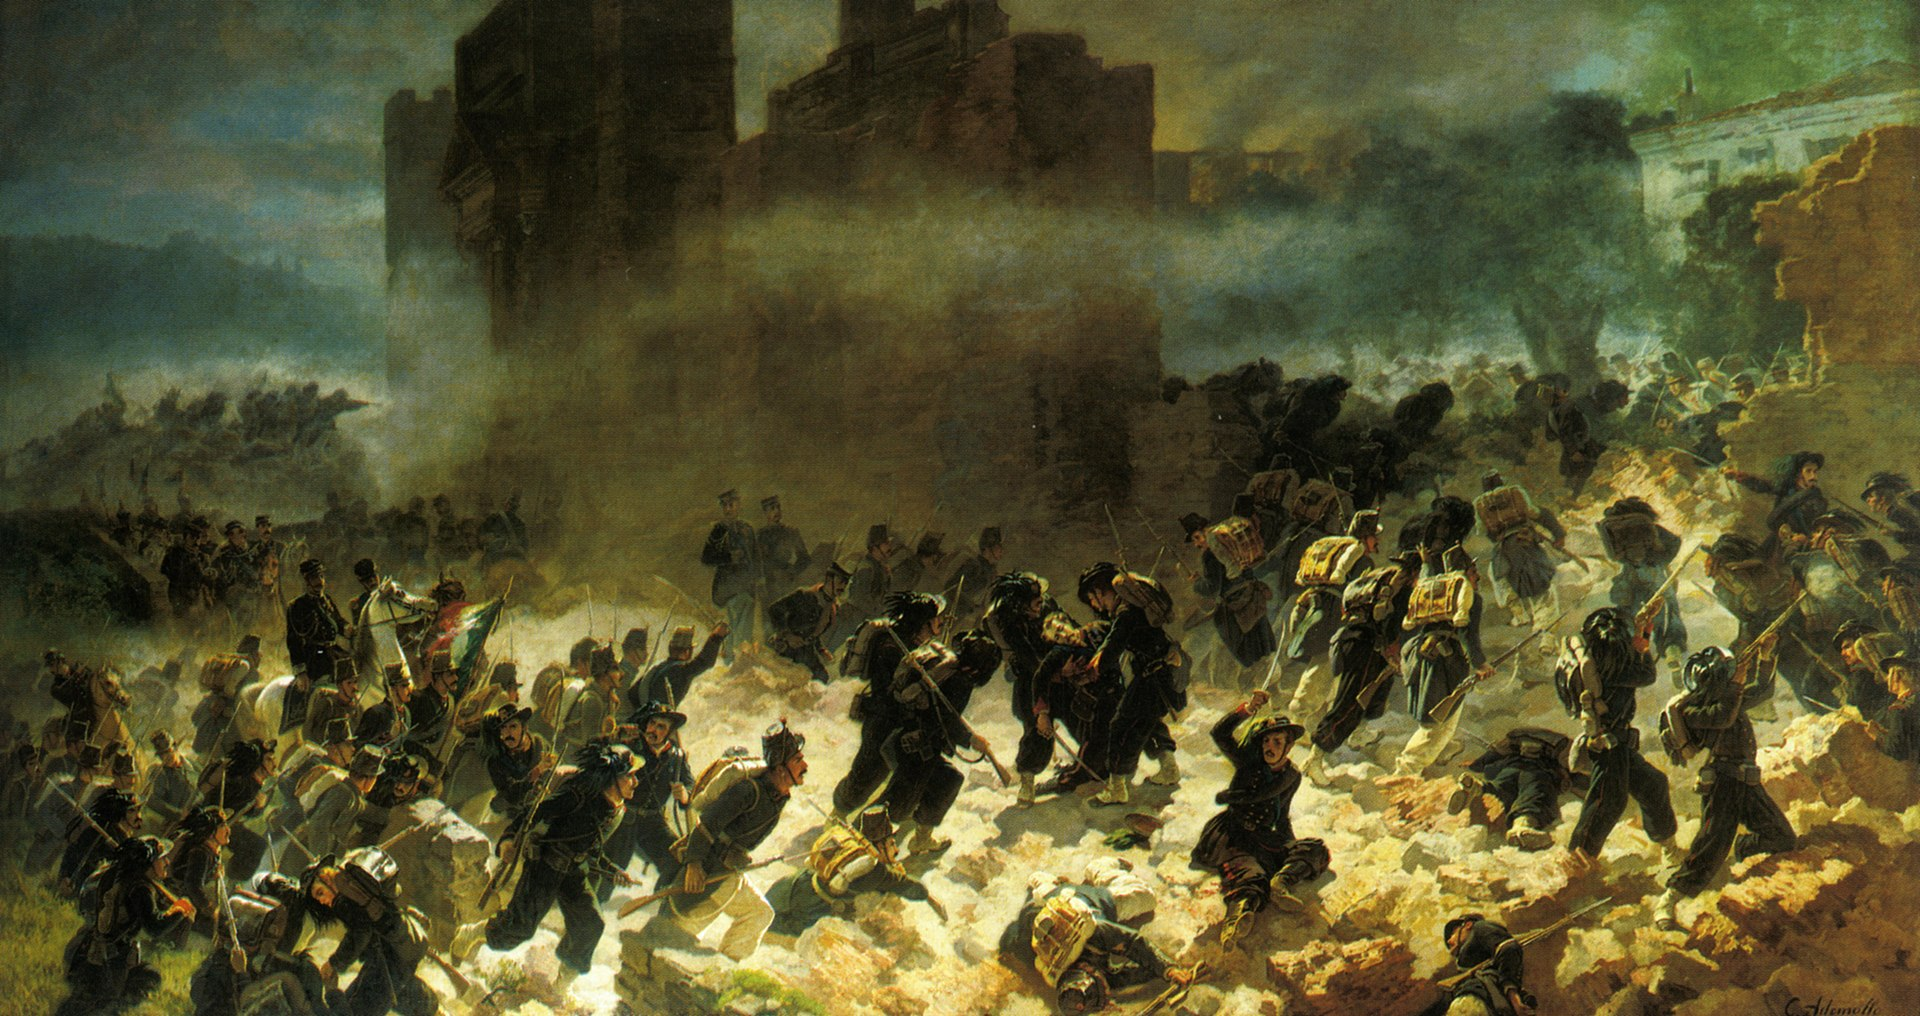 On this day in 1870 the Bersaglieri corps enter Rome through the Porta Pia, and thus completing the unification of Italy